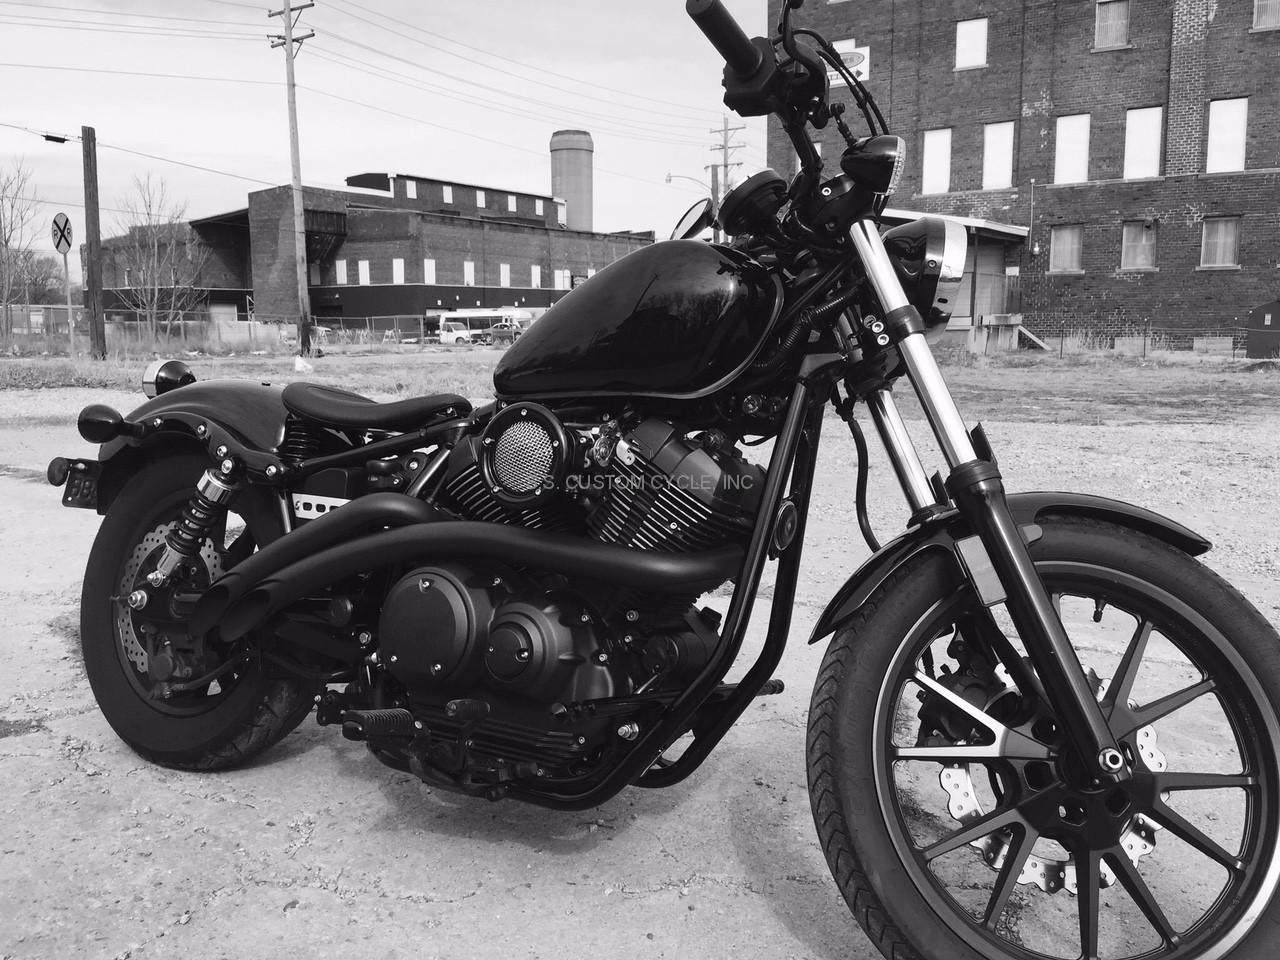 bassani radial sweepers exhaust for star bolt ss custom cycle